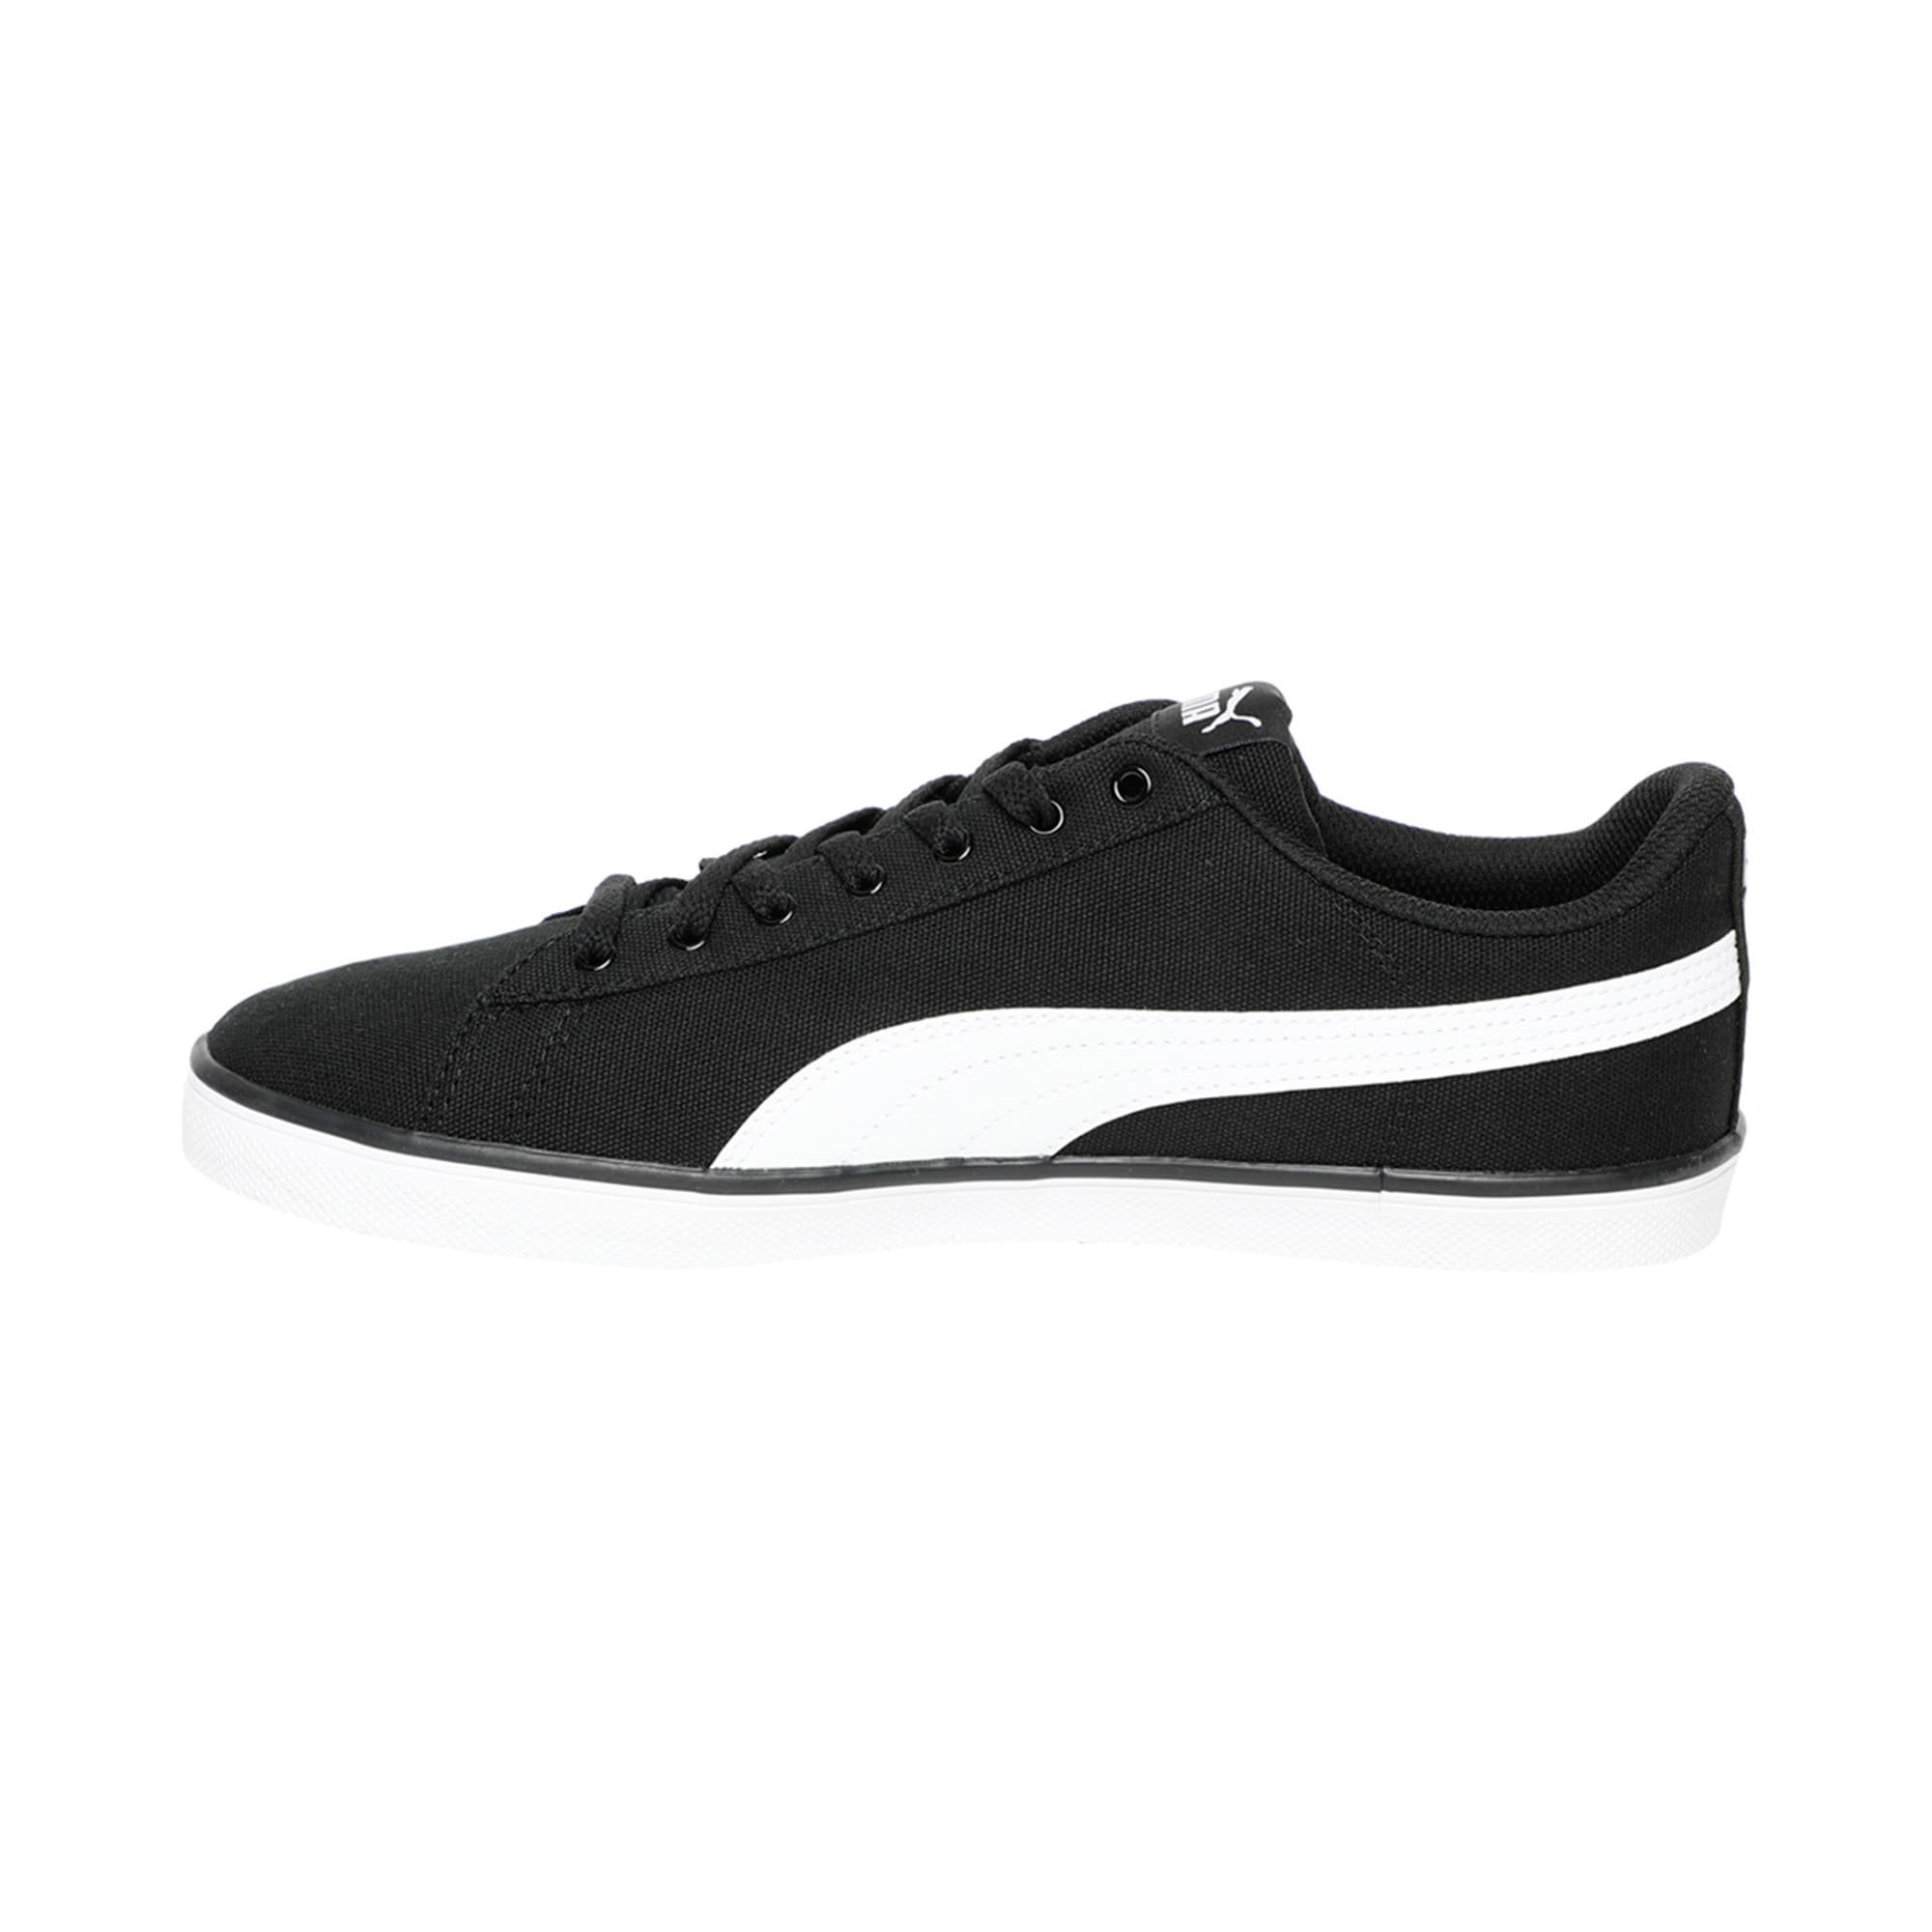 Thumbnail 1 of Urban Plus CV, Puma Black-Puma White, medium-IND